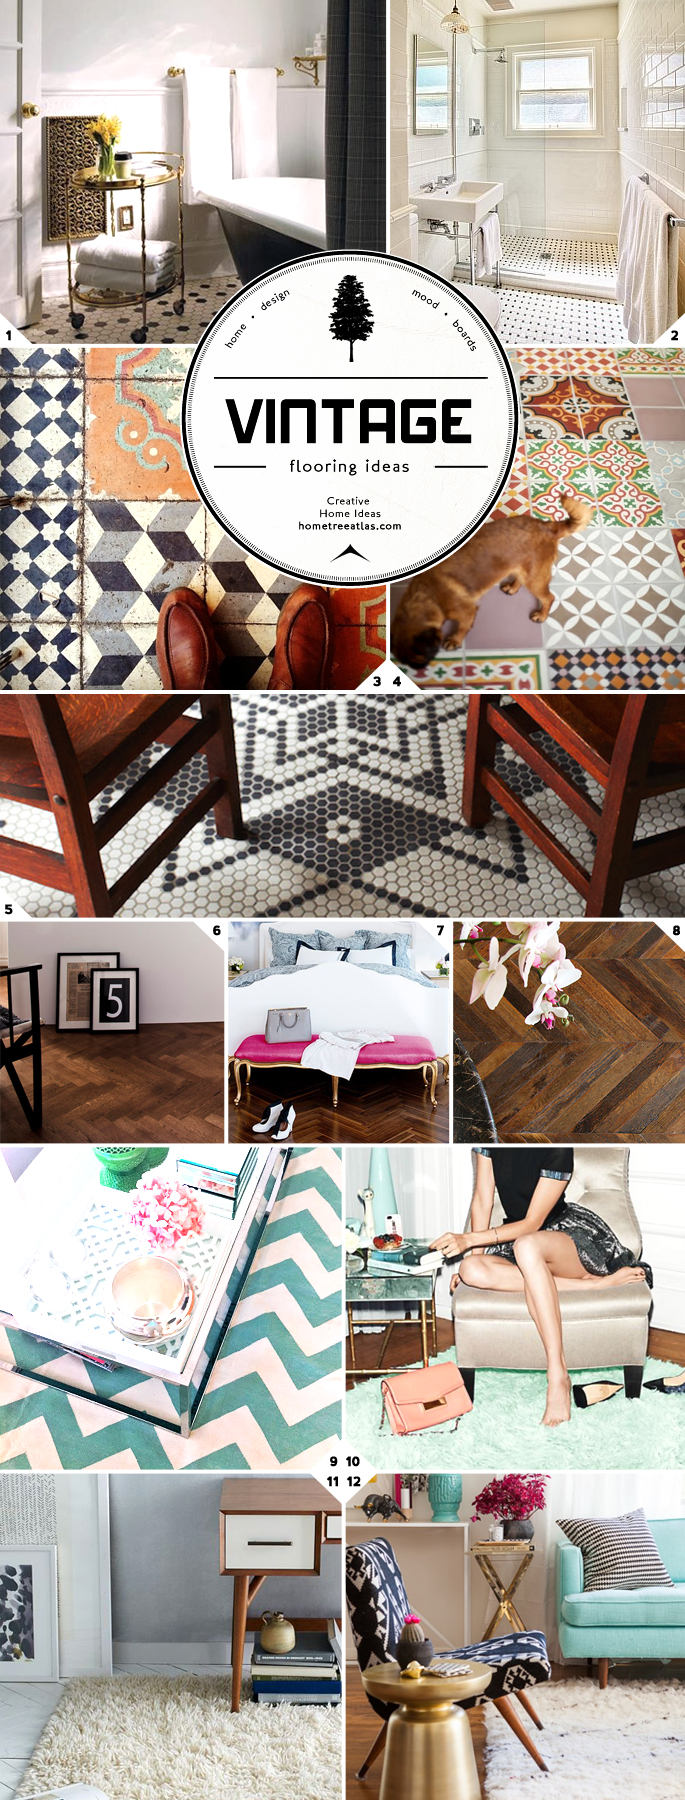 Vintage Flooring Ideas